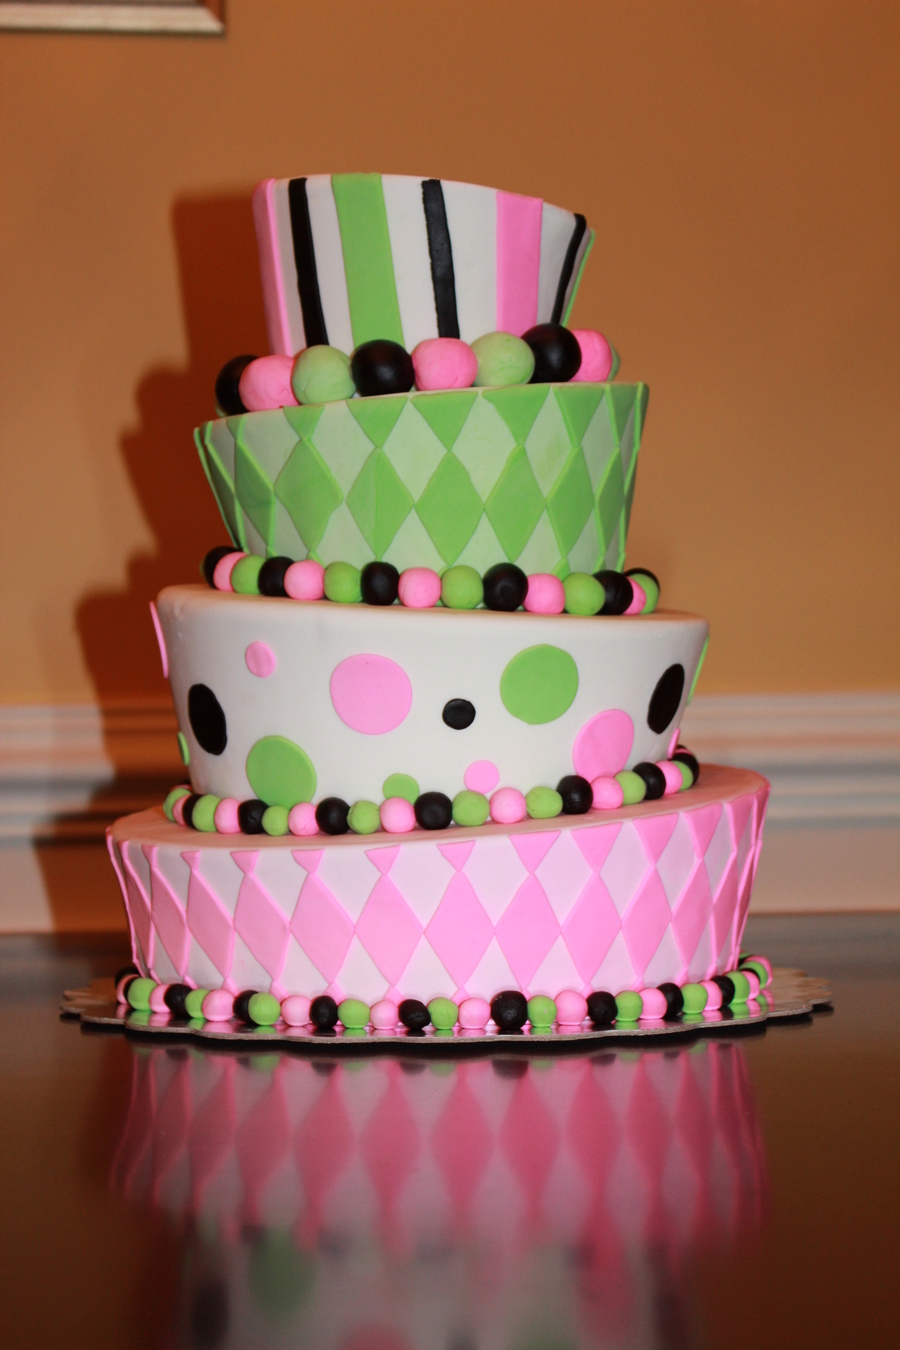 Topsy Turvy on Cake Central